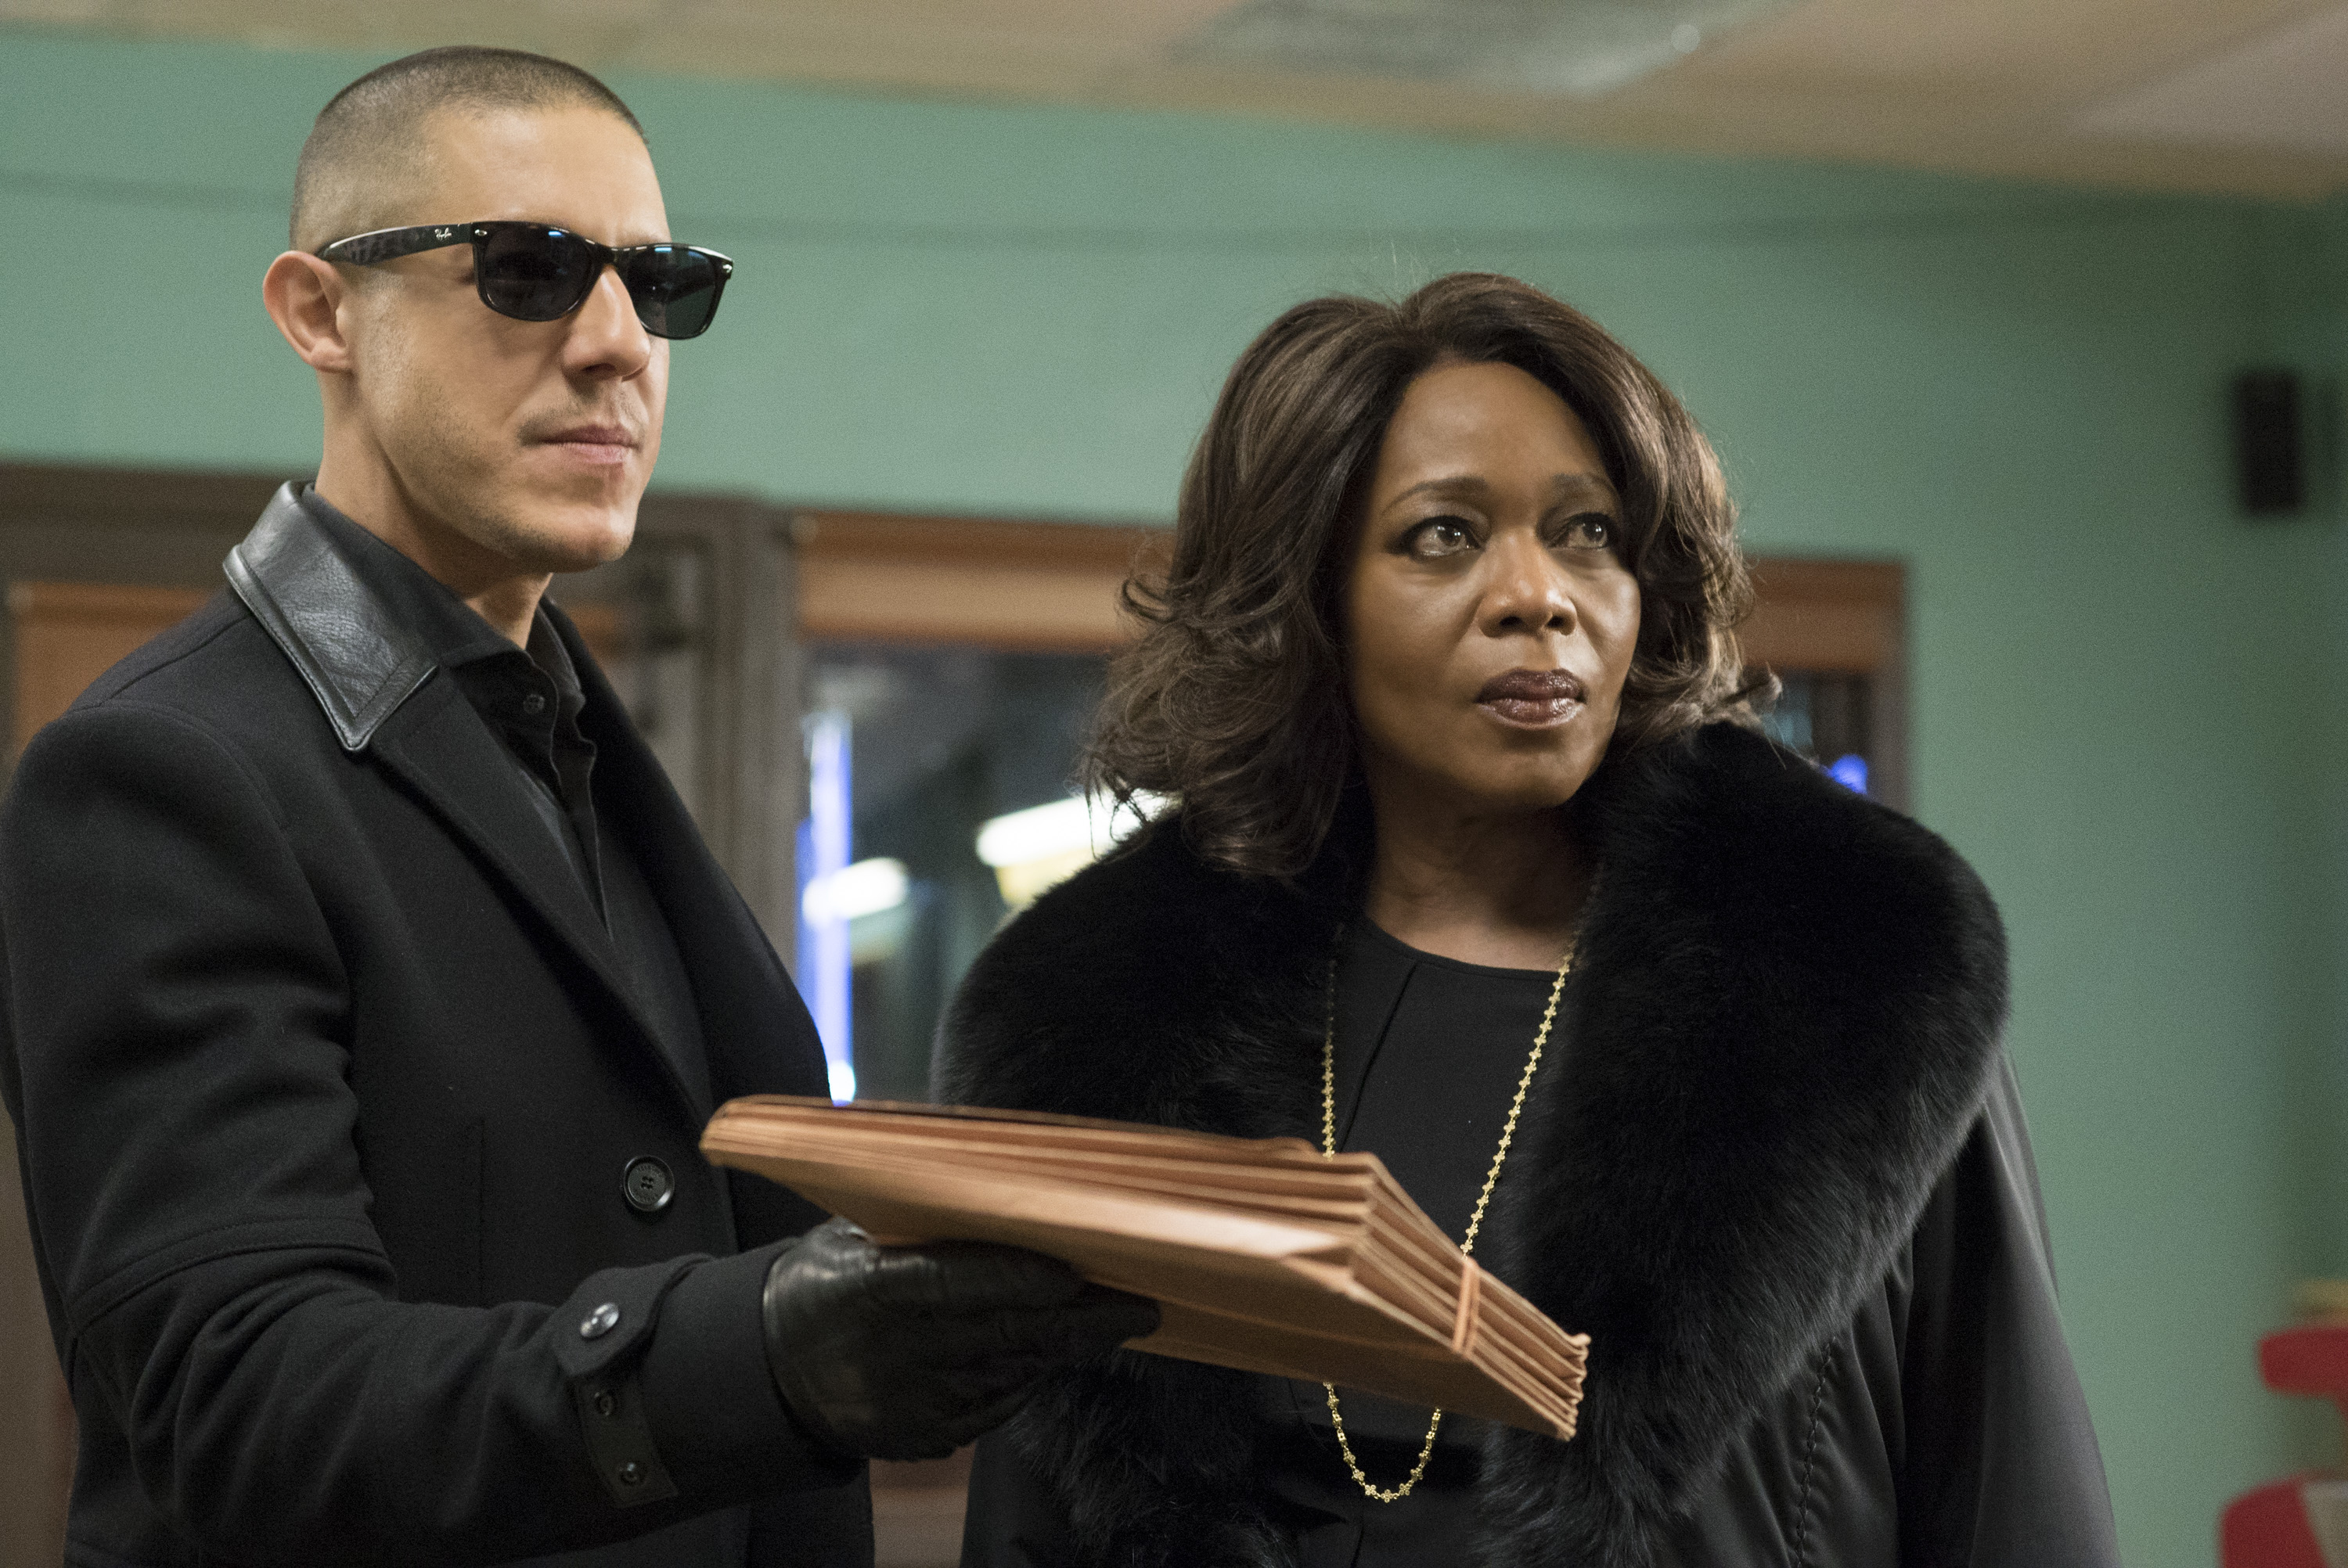 Luke-Cage-Theo-Rossi-as-Shades-and-Alfre-Woodard-as-Mariah-Dillard.jpg